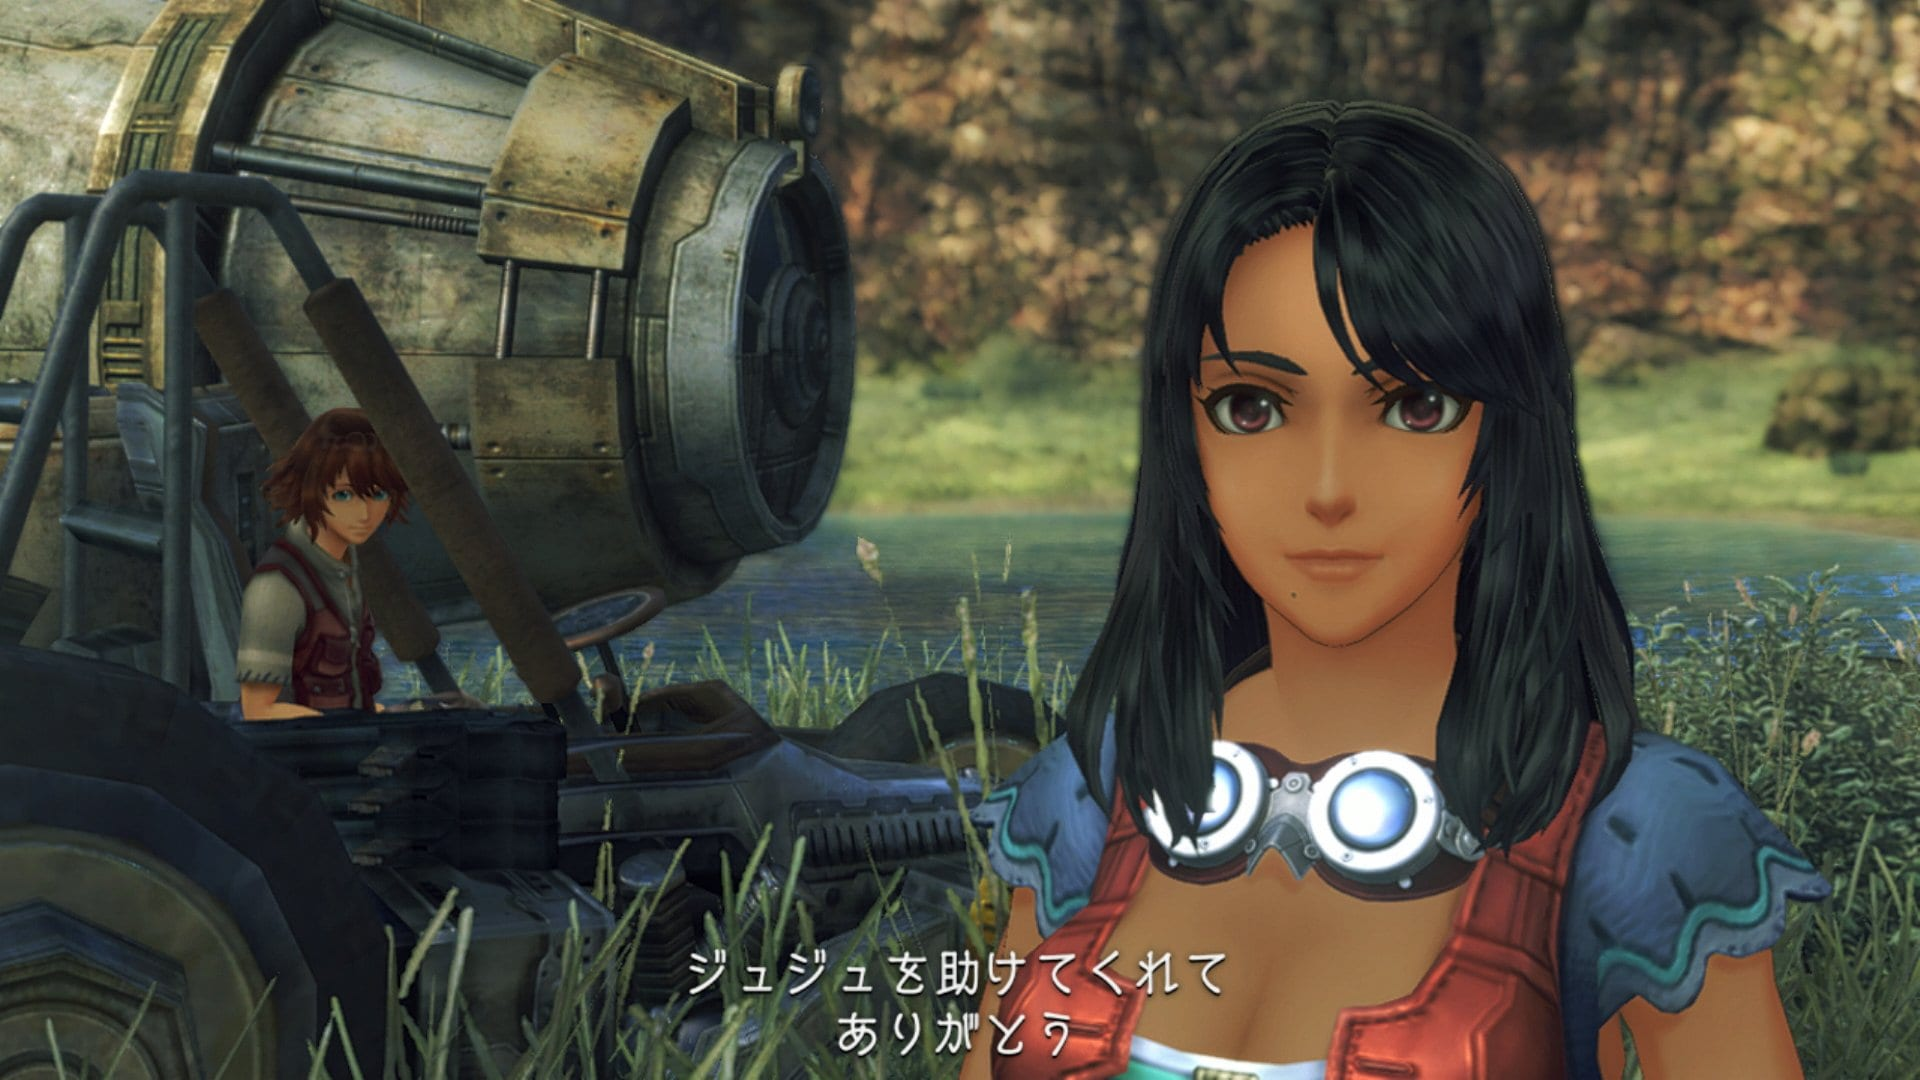 xenoblade chronicles screenshots and key art, definitive edition